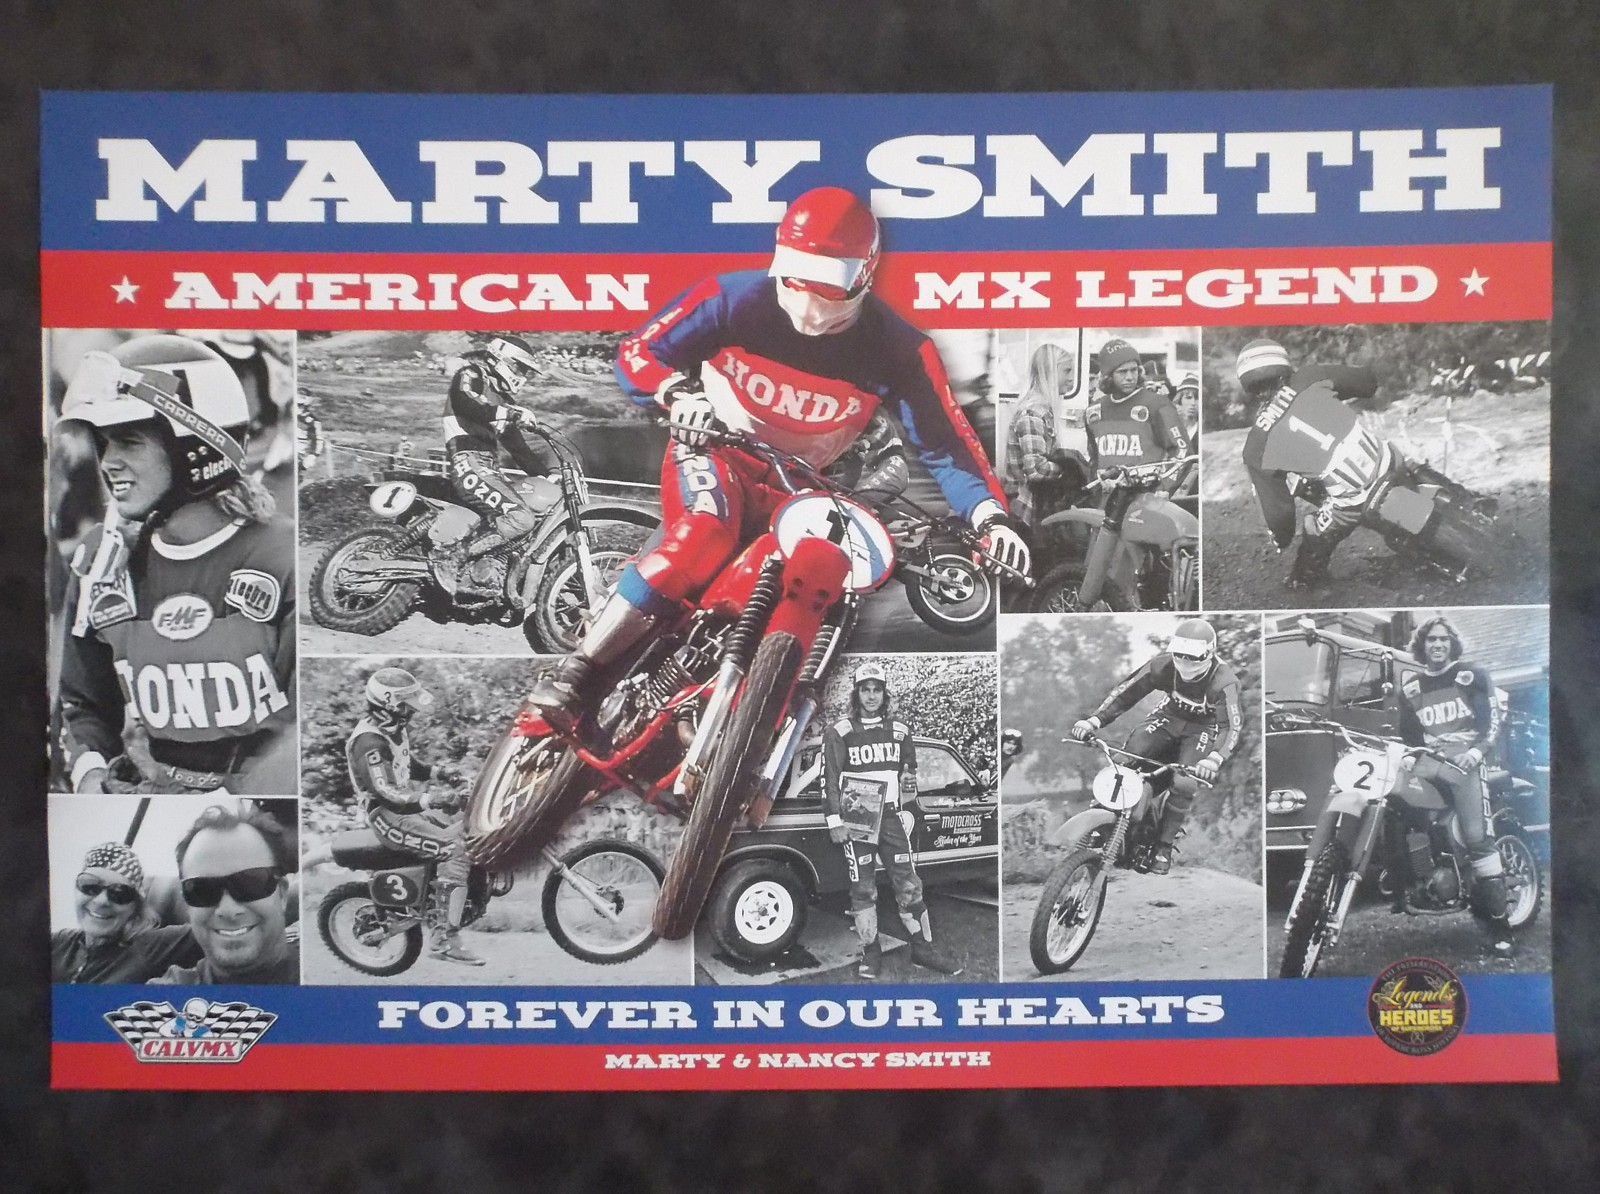 A True Legend in the sport of motocross. - Reds - Motocross Pictures - Vital MX